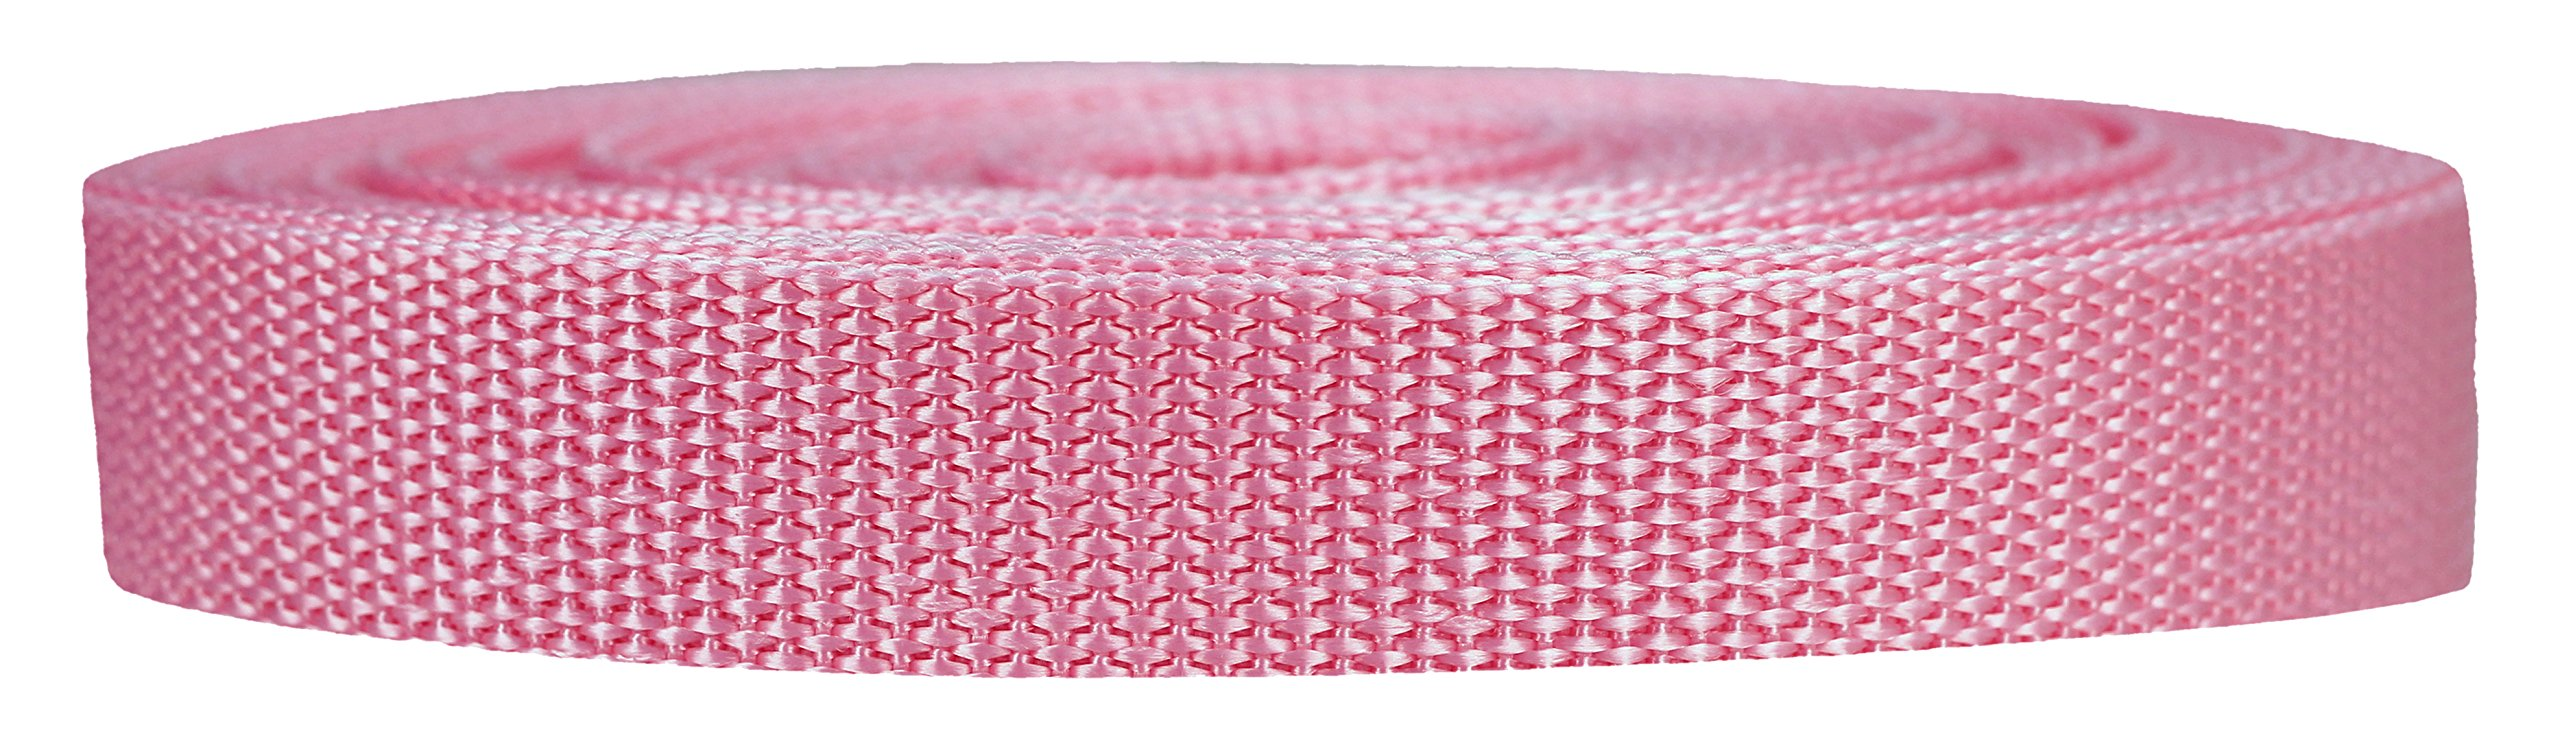 Strapworks Heavyweight Polypropylene Webbing - Heavy Duty Poly Strapping for Outdoor DIY Gear Repair, 3/4 Inch x 25 Yards, Pink by Strapworks